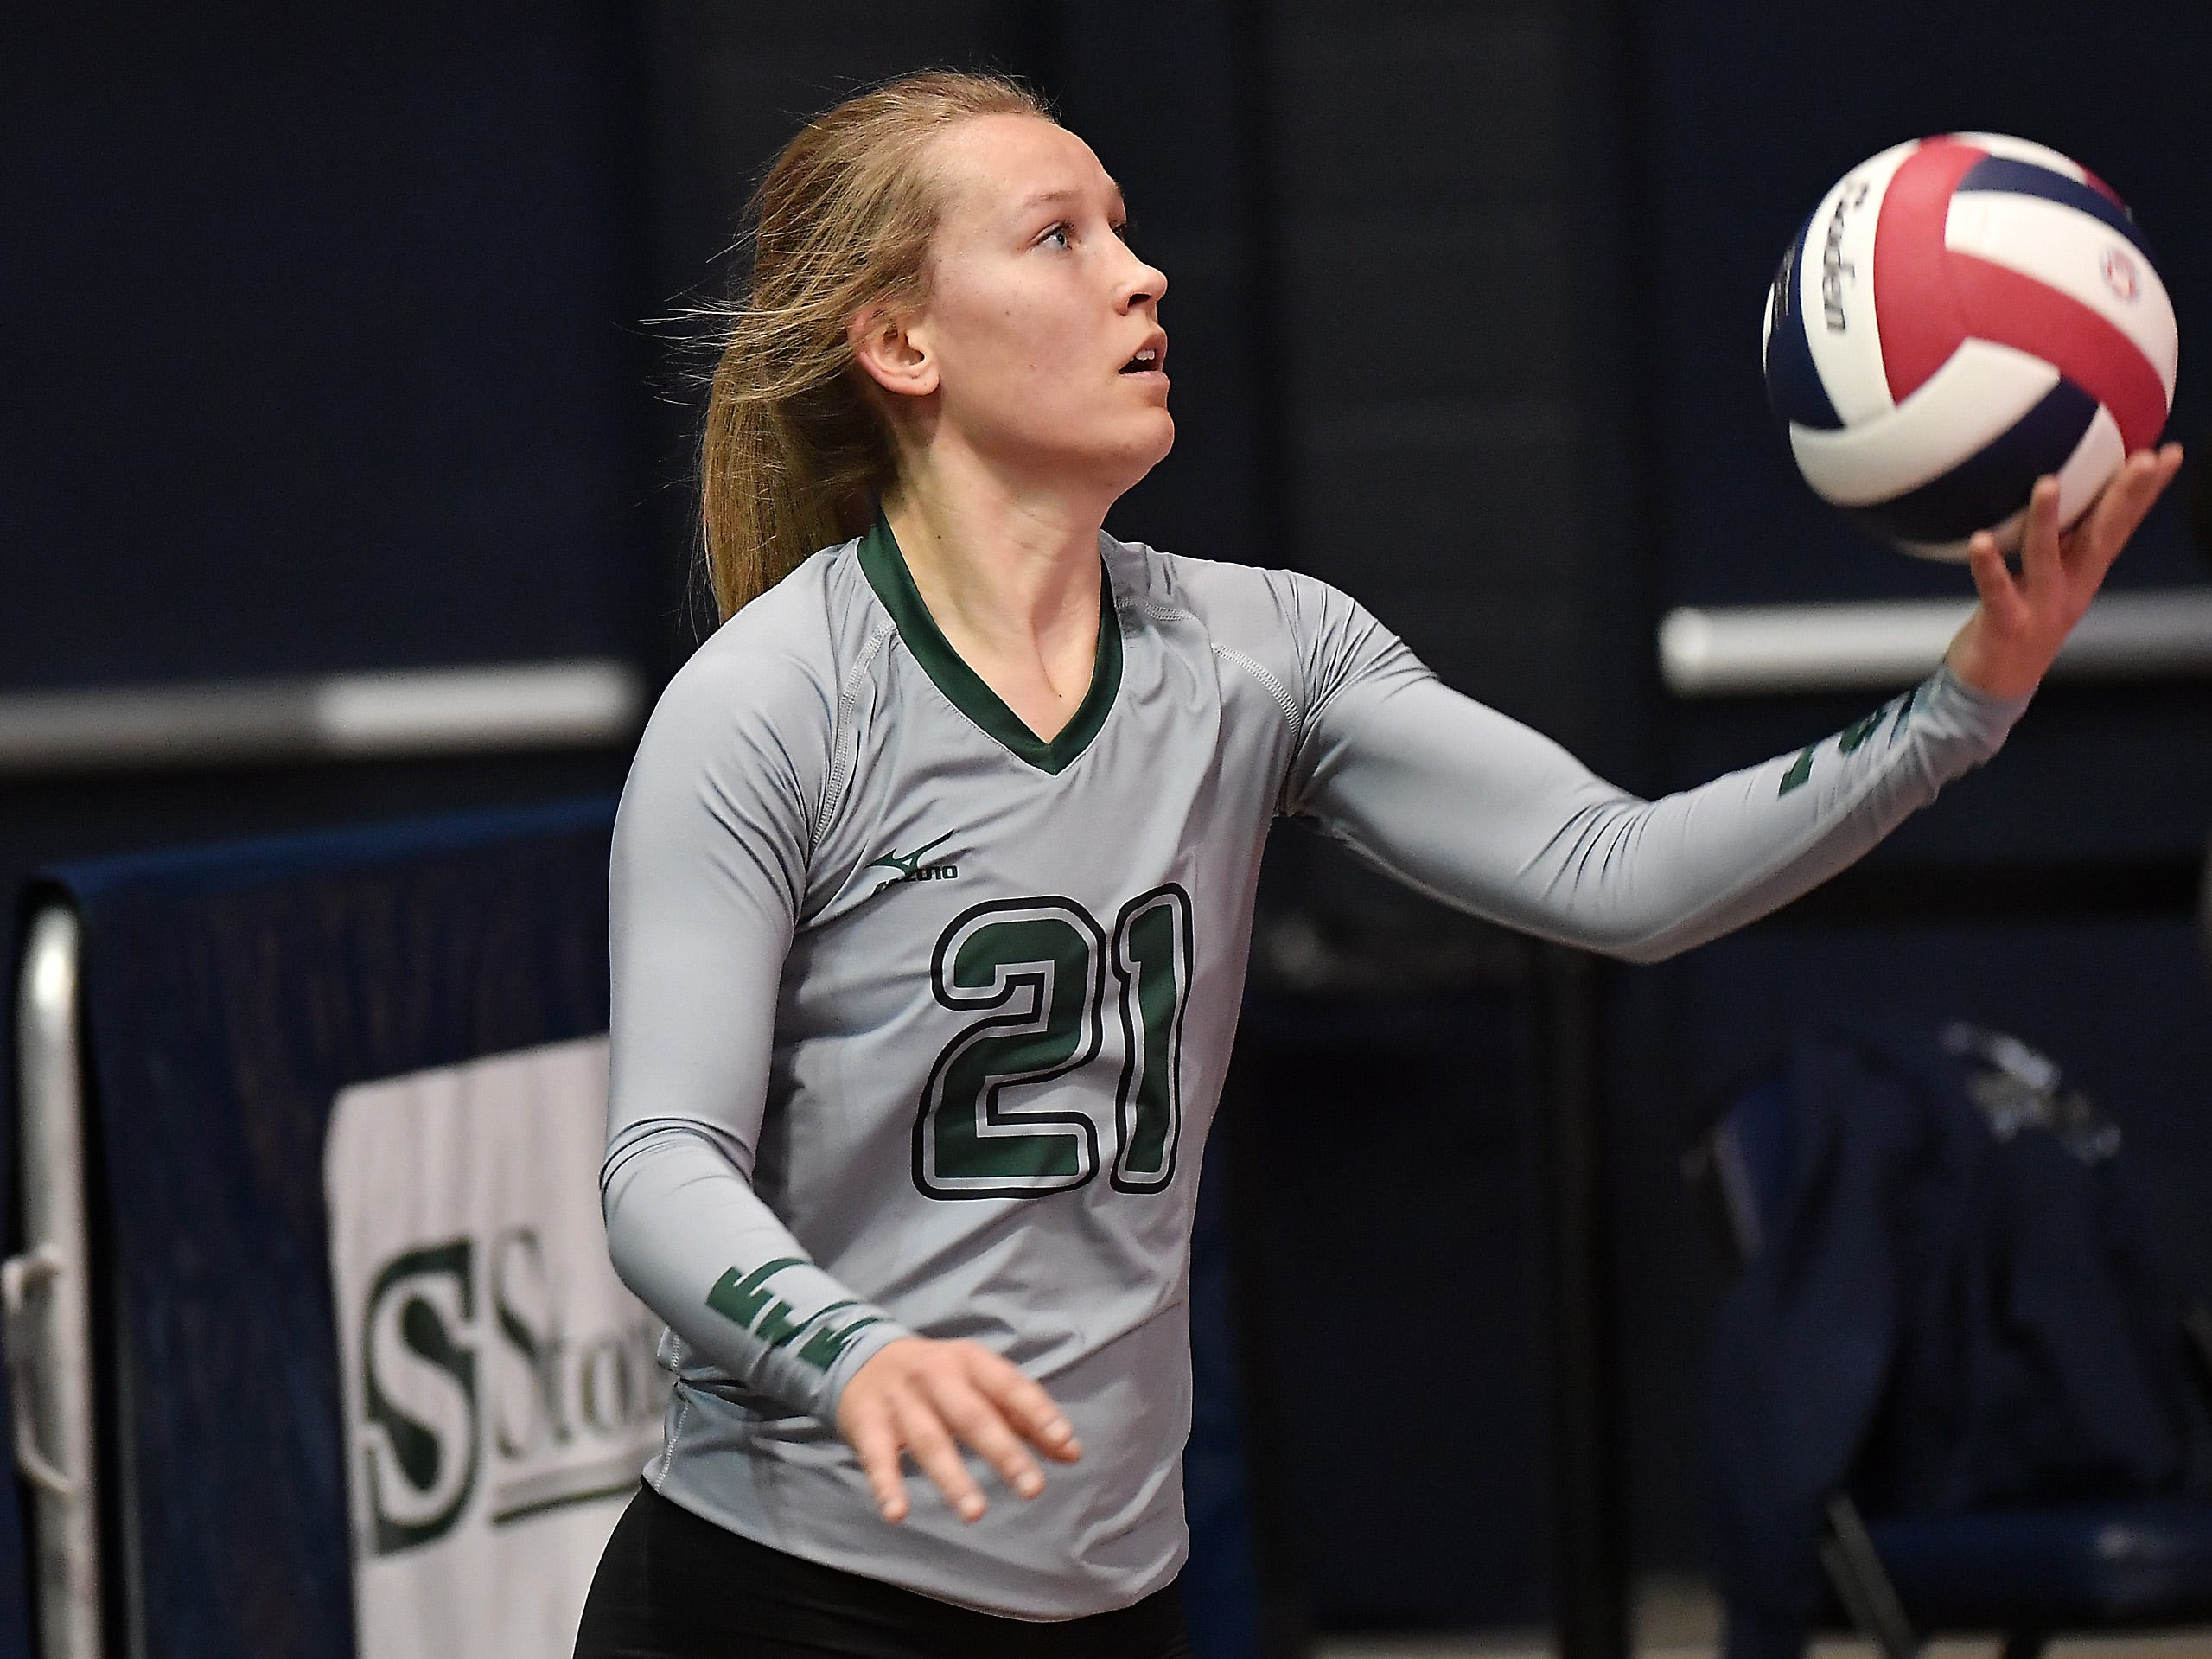 Sami Connerton of Tri-Cities serves during a match with Scobey at the All-Class State Volleyball Tournament at the Brick Breeden Fieldhouse in Bozeman Friday.